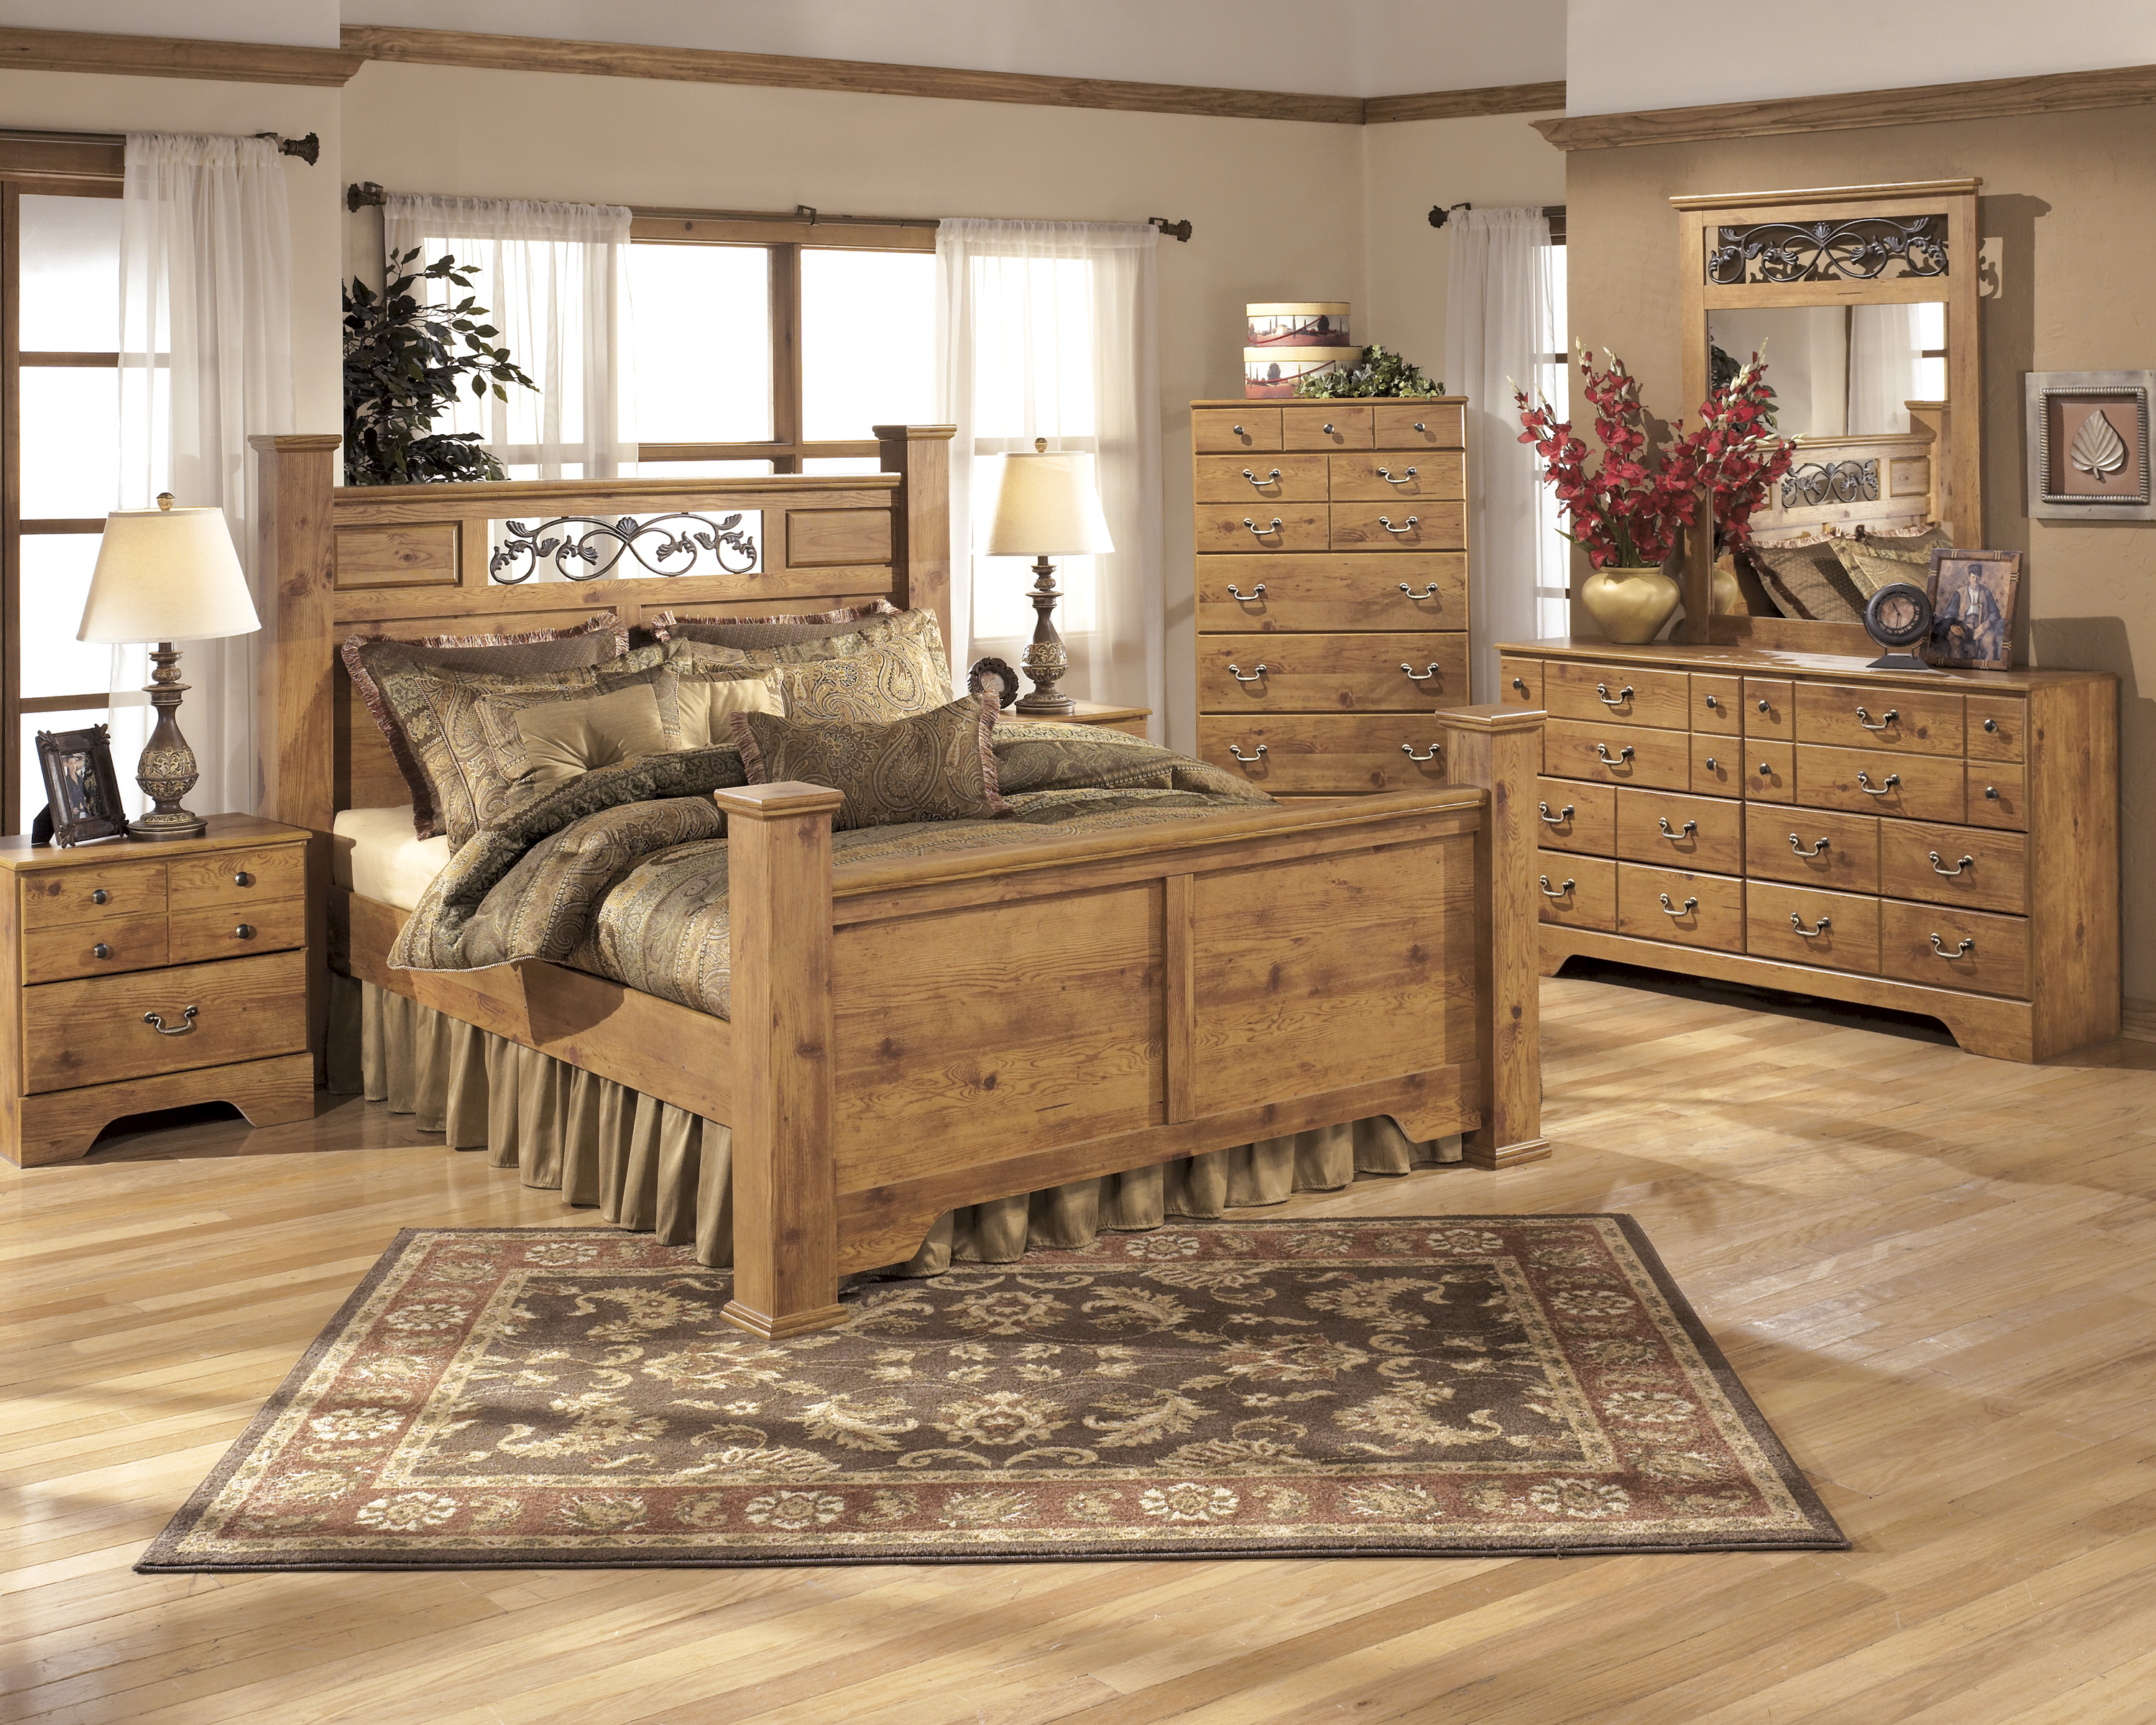 queen bedroom number products dressers group dresser kira item bright dunk furniture q ashley